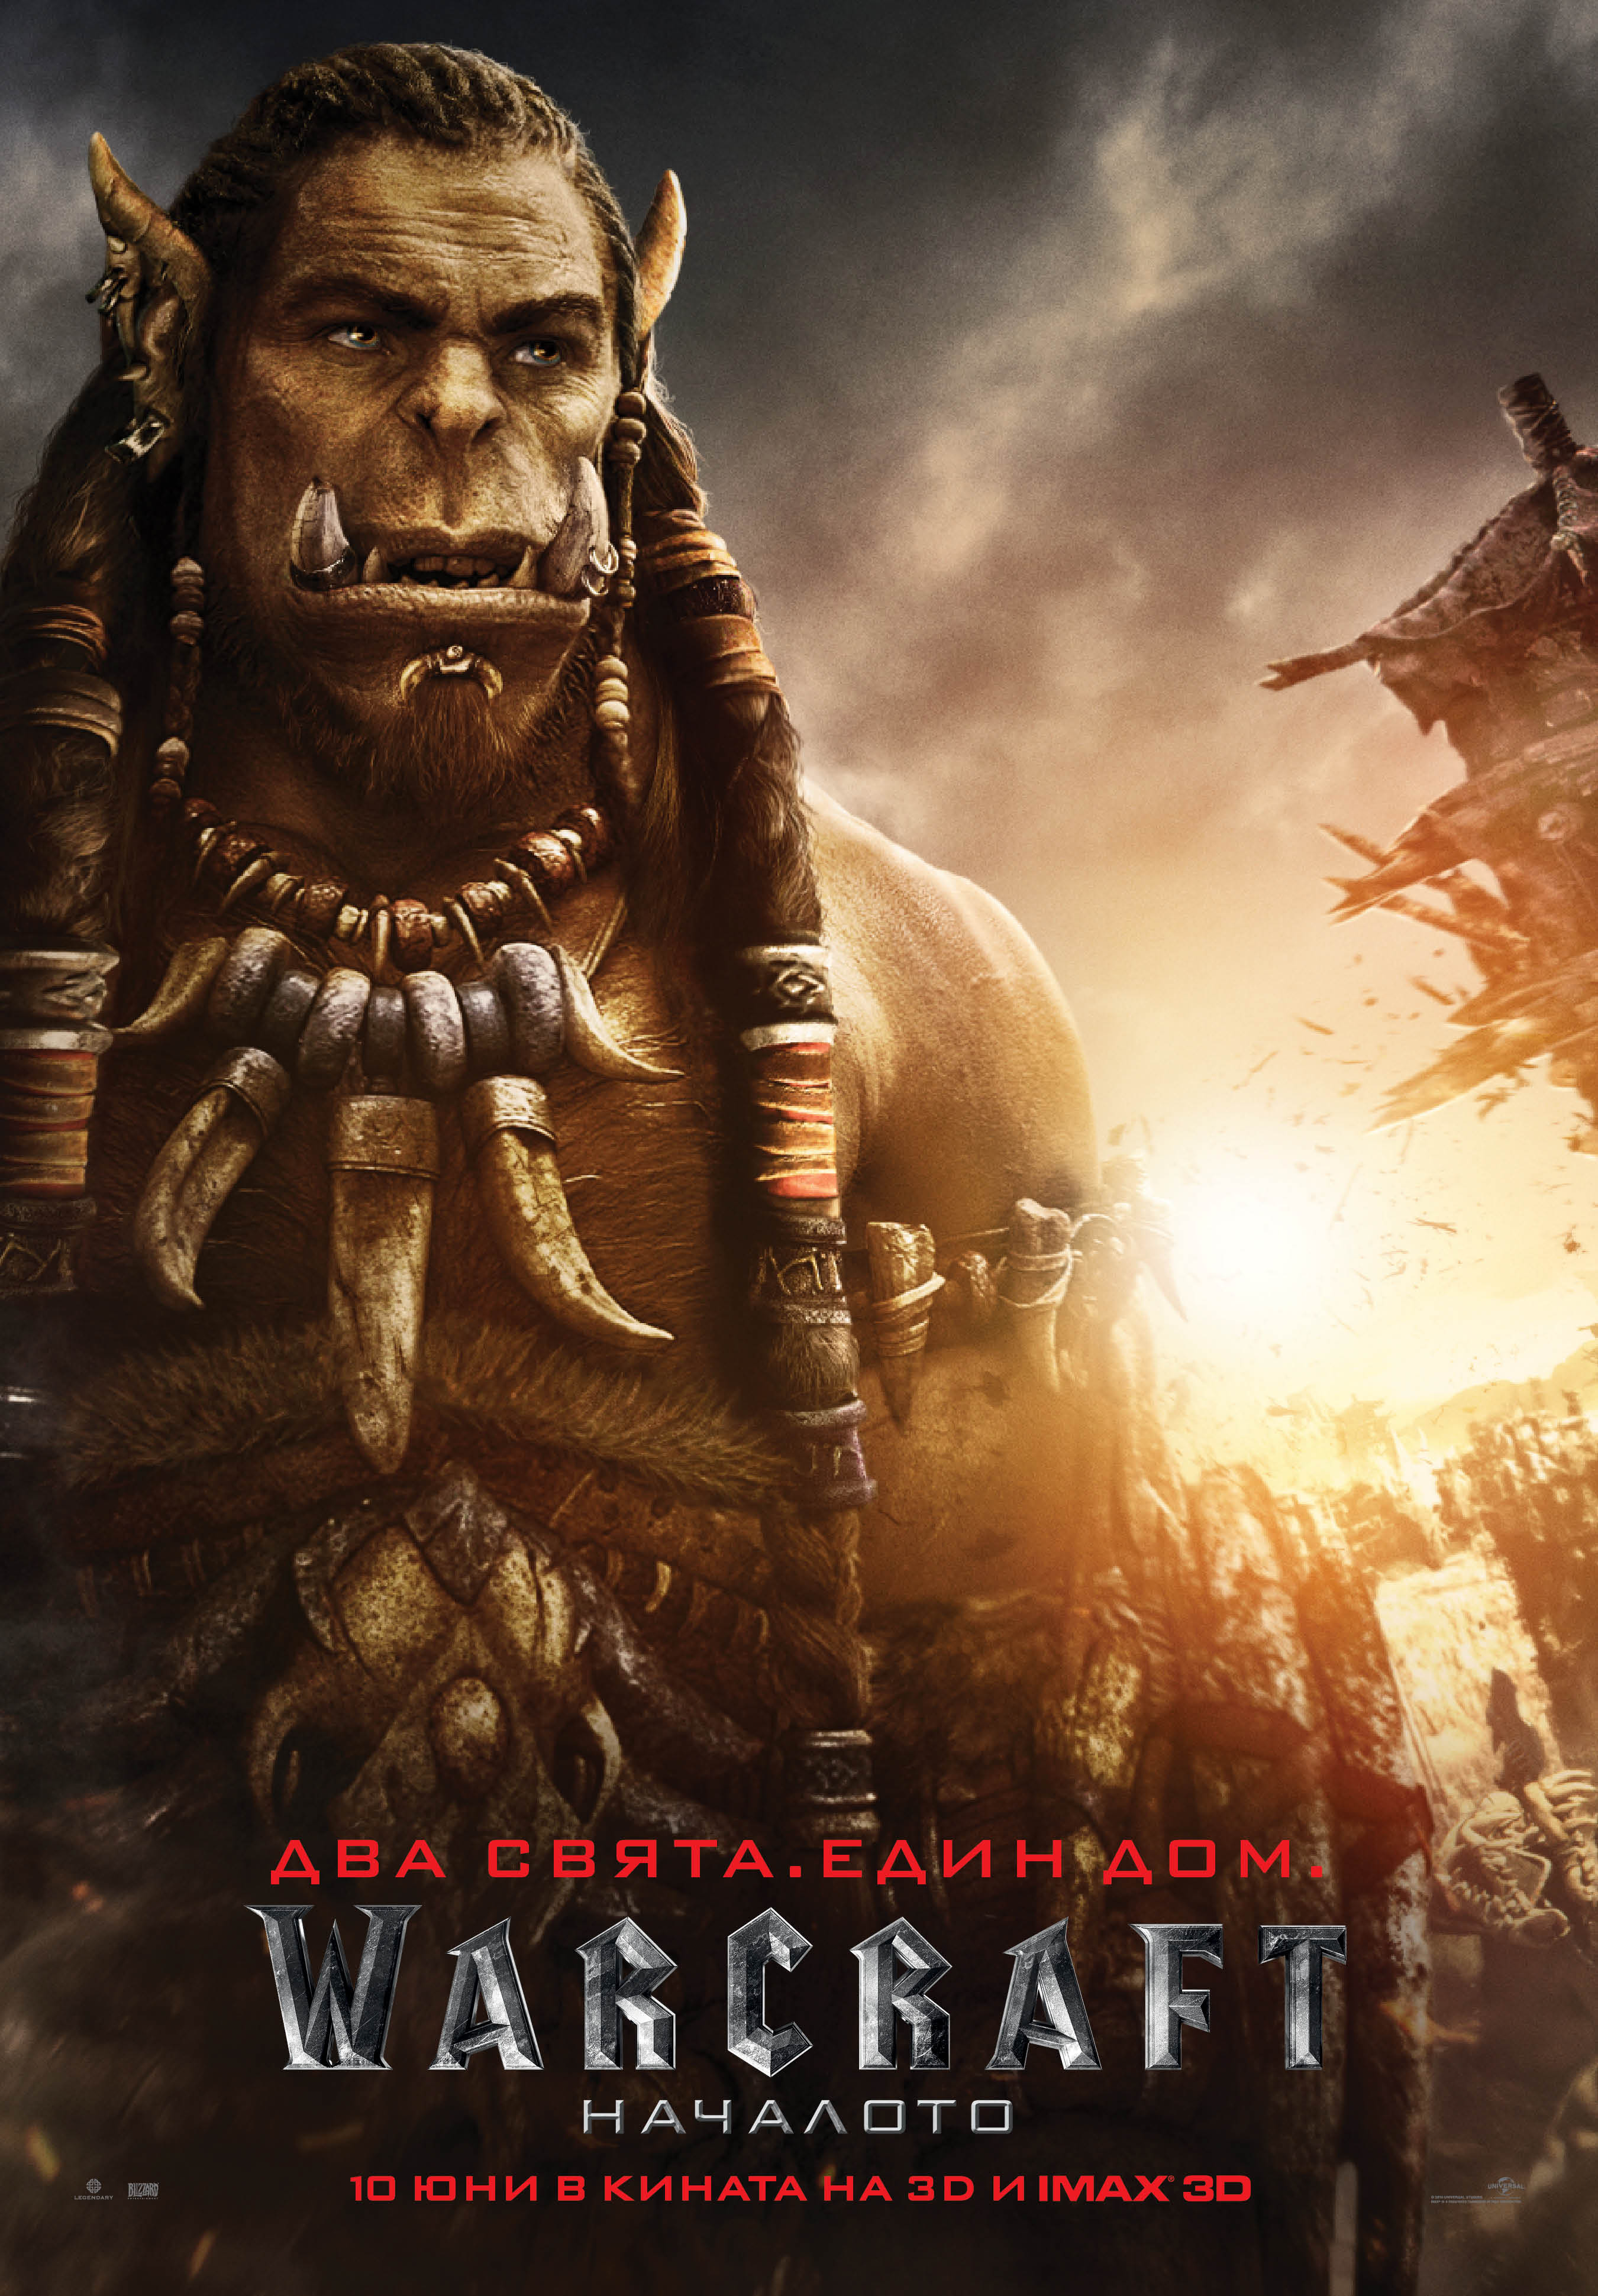 Character Online posters - Warcraft (Durotan) April 2016